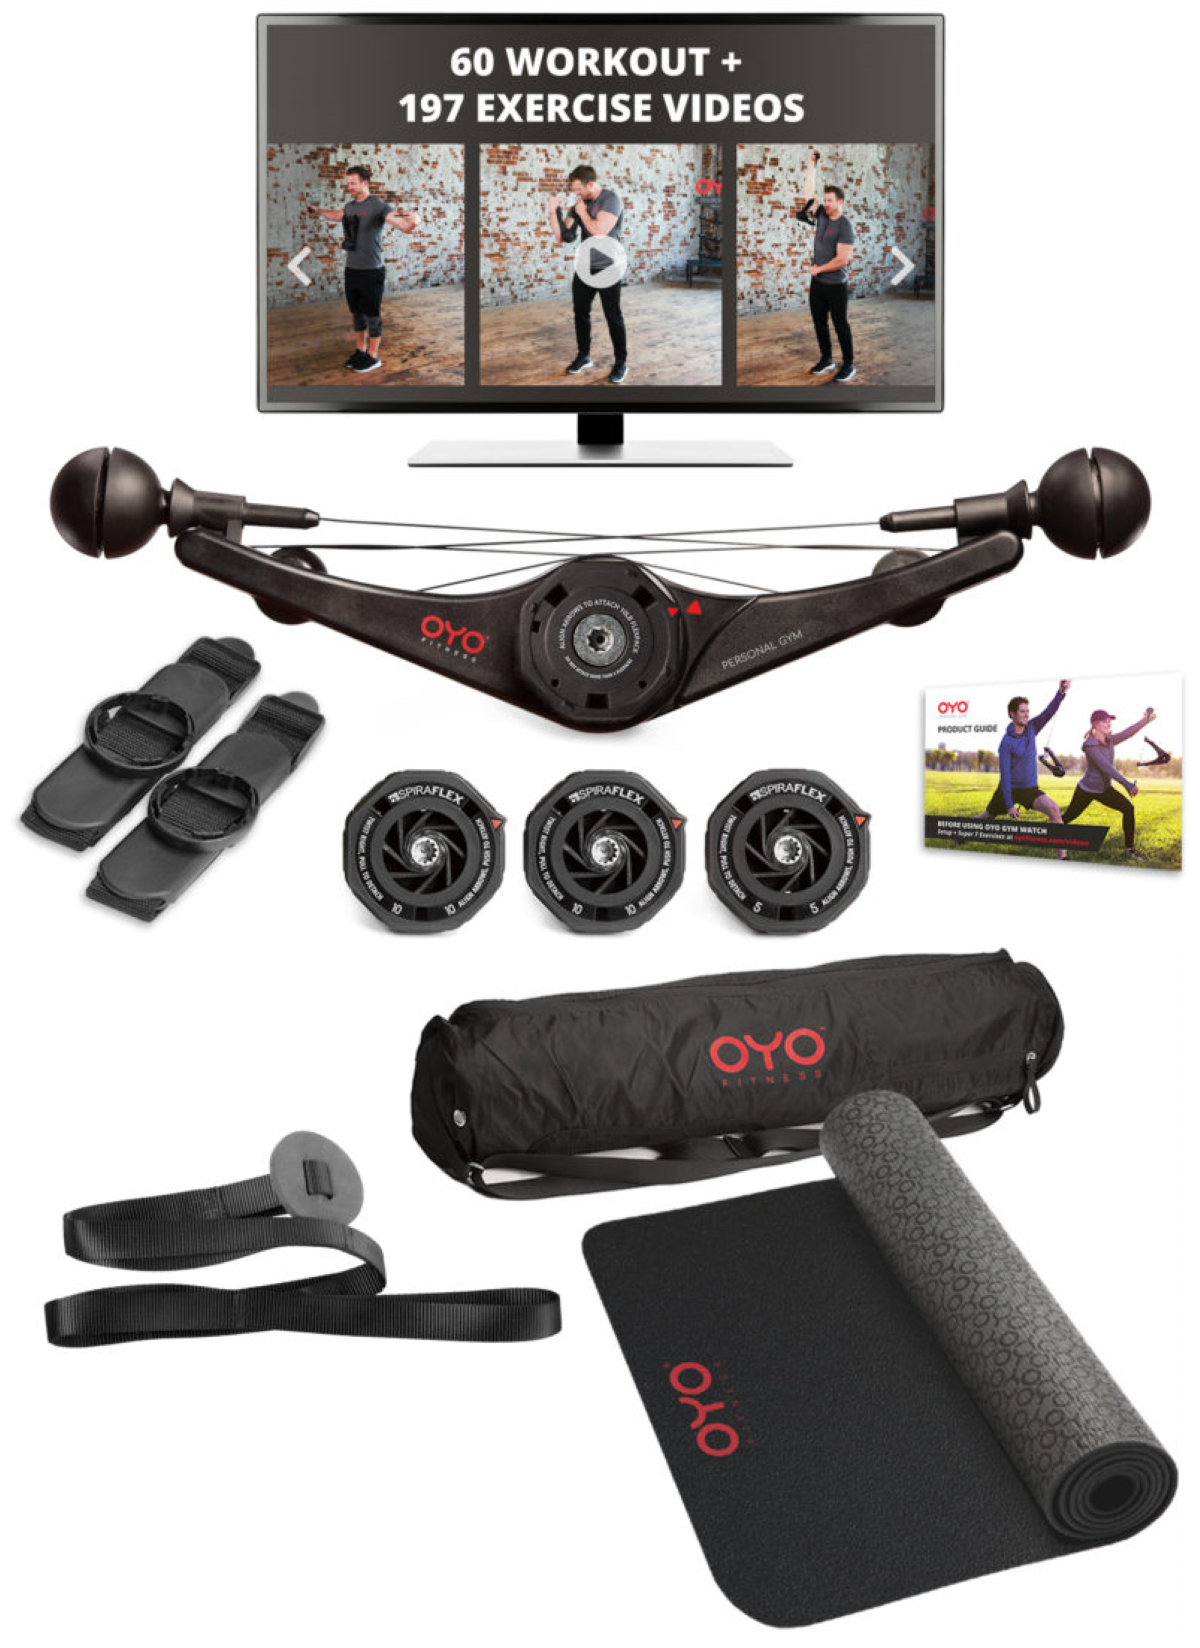 OYO Gym Package - Box Contents